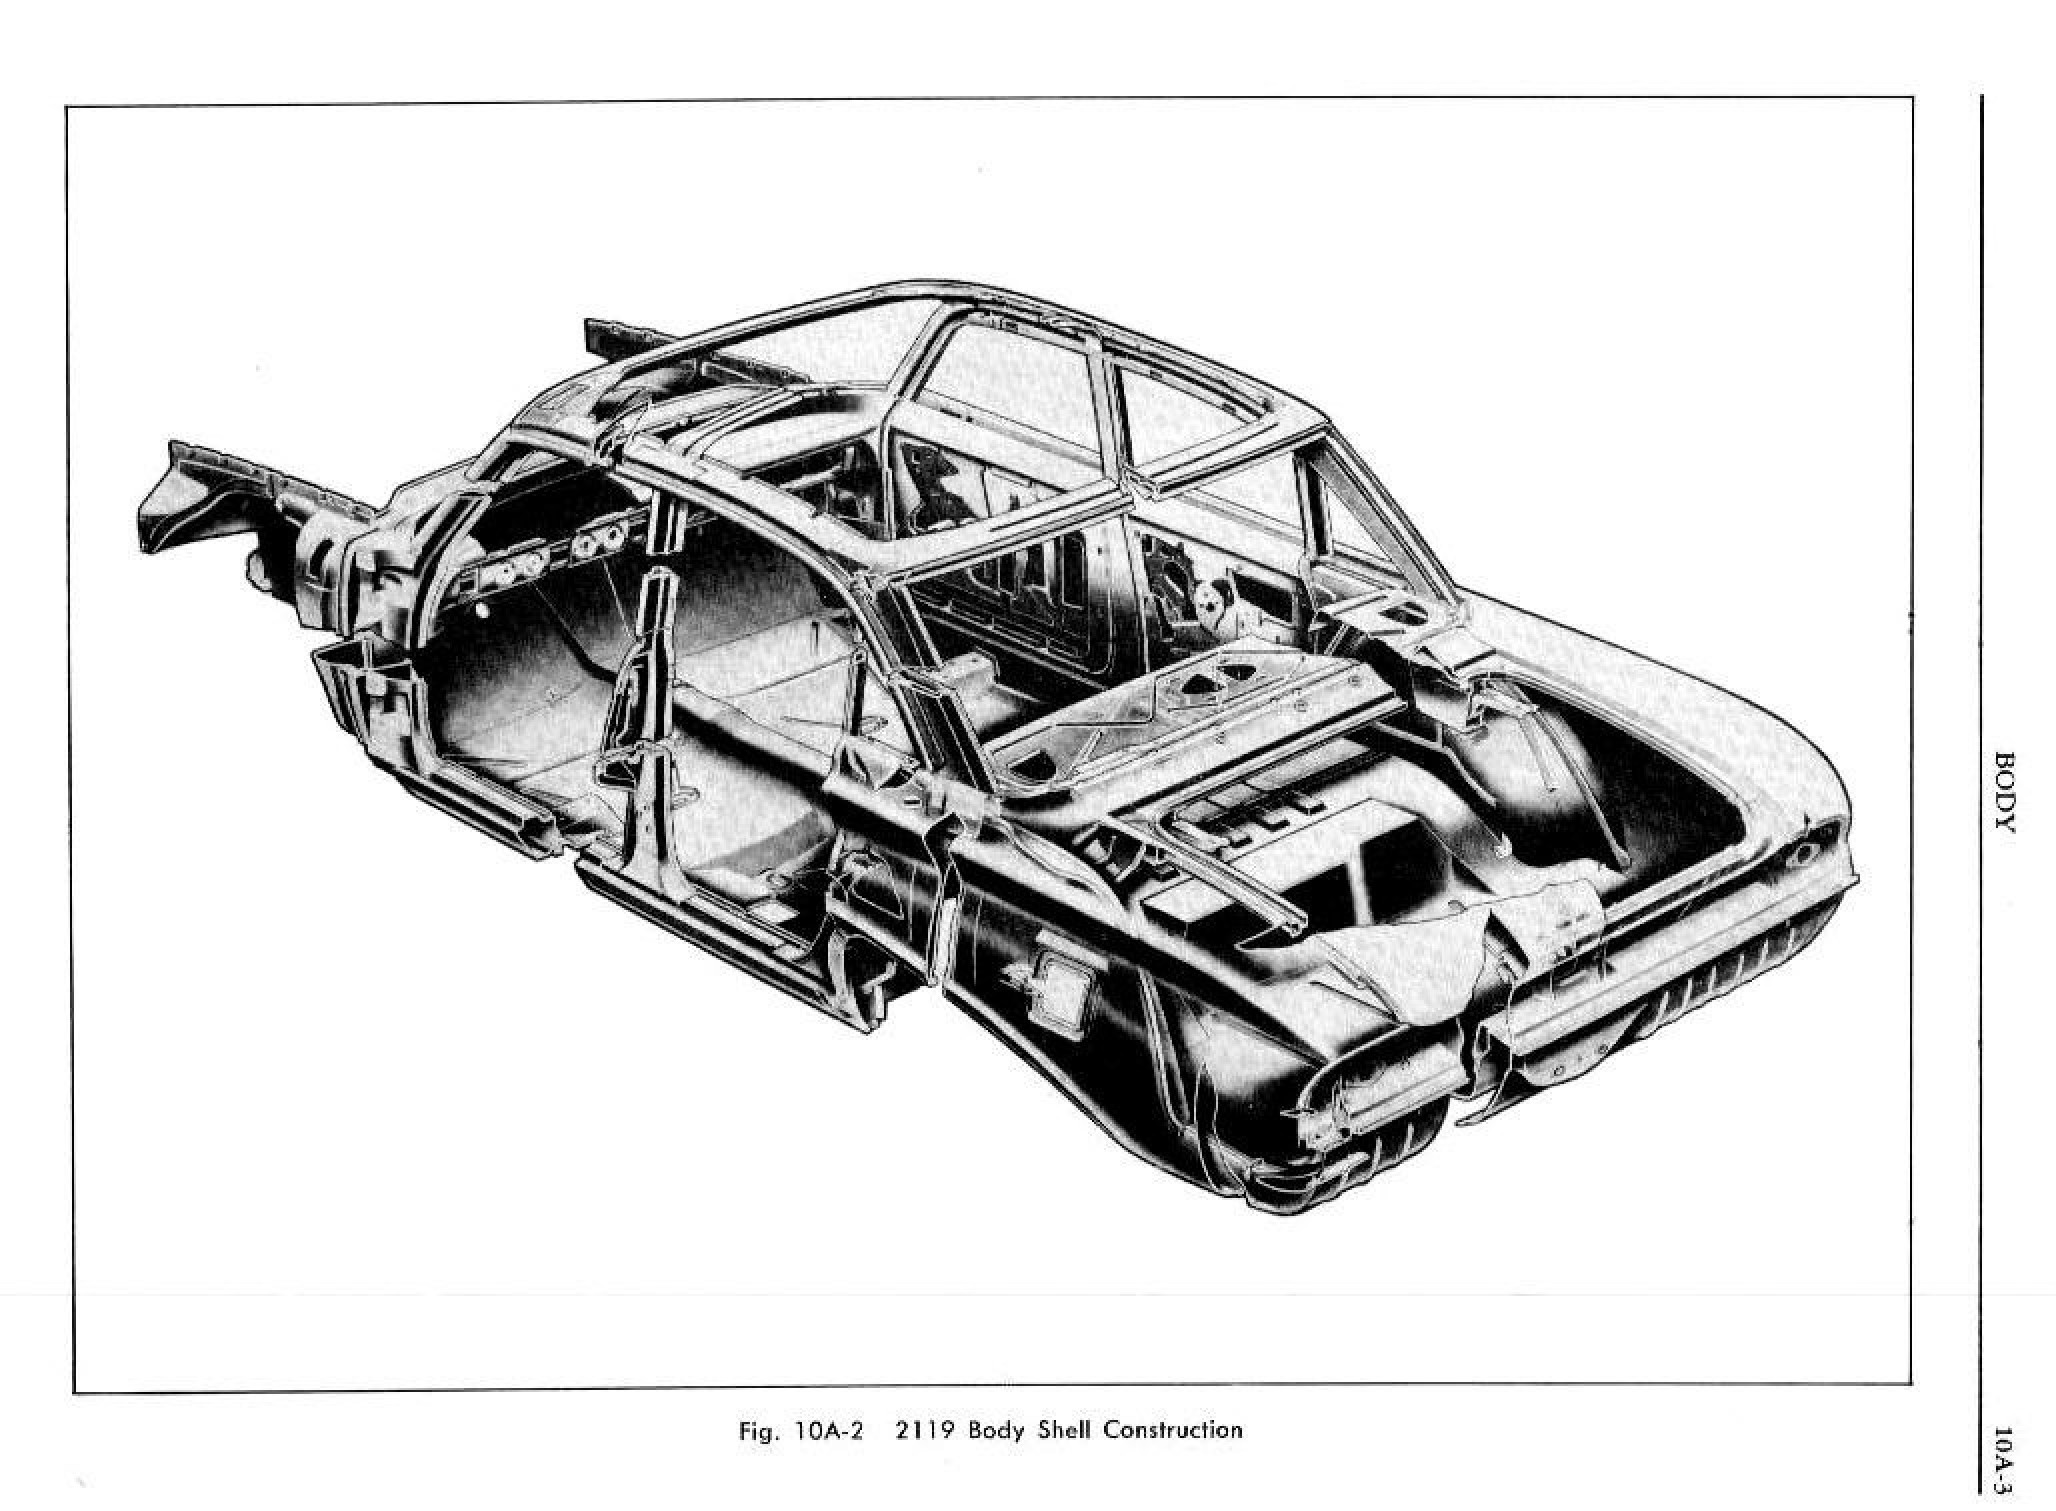 1961 Pontiac Tempest Shop Manual- Body Page 4 of 62